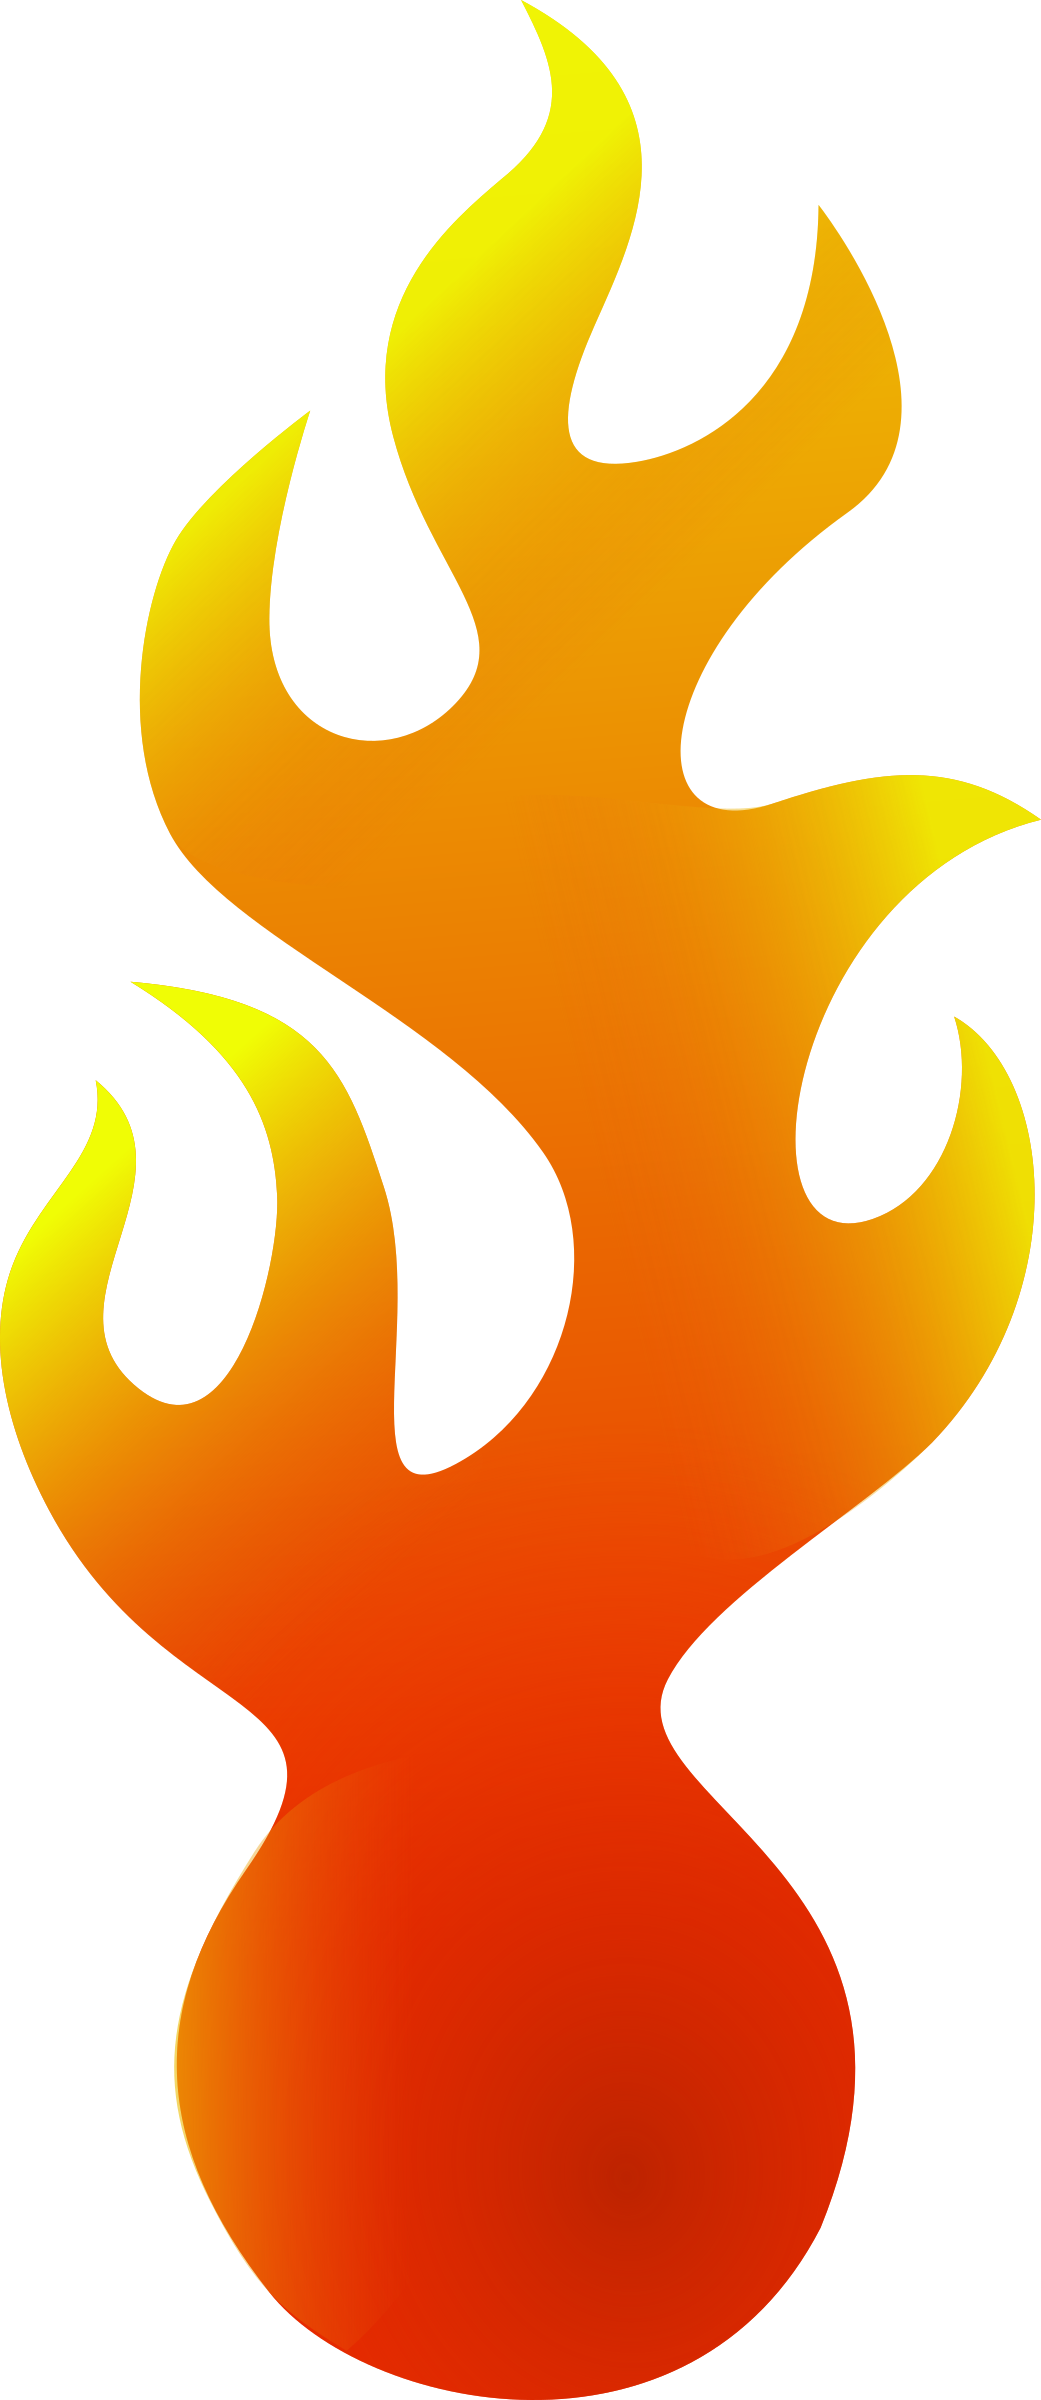 Flame clipart heat, Flame heat Transparent FREE for download.